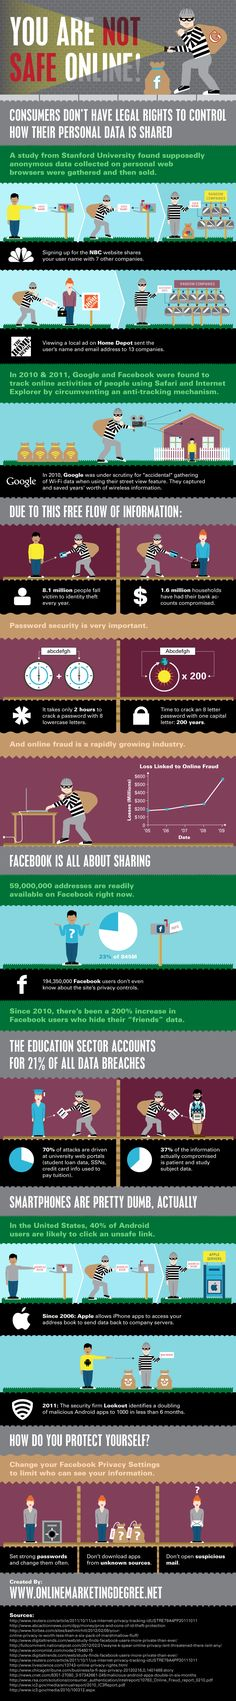 You are not safe online - Infographic